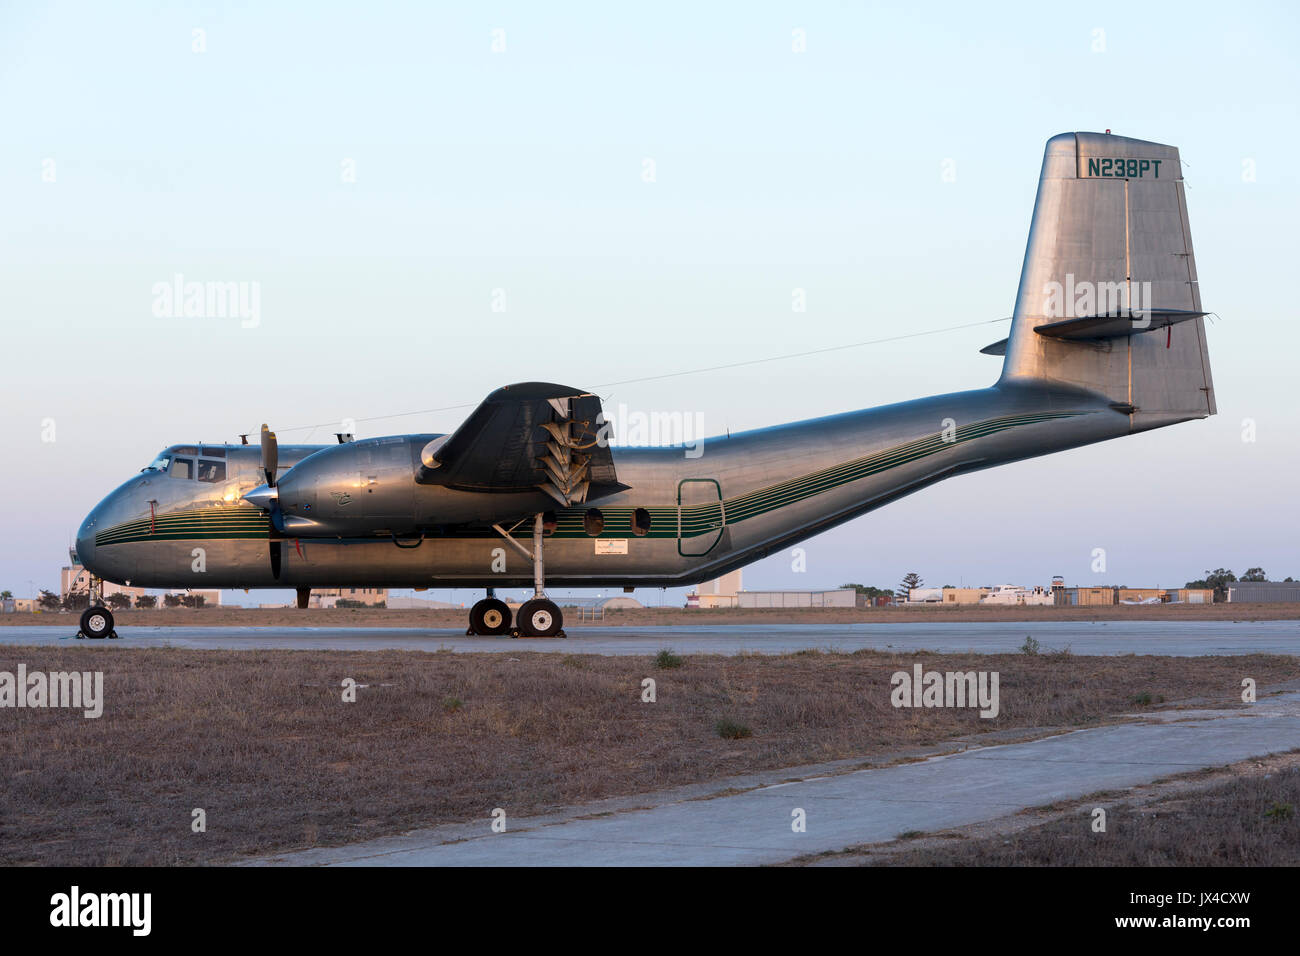 A turboprop converted De Havilland Canada DHC-4 Caribou [Reg.: N238PT] parked in apron 4 in the late evening. - Stock Image